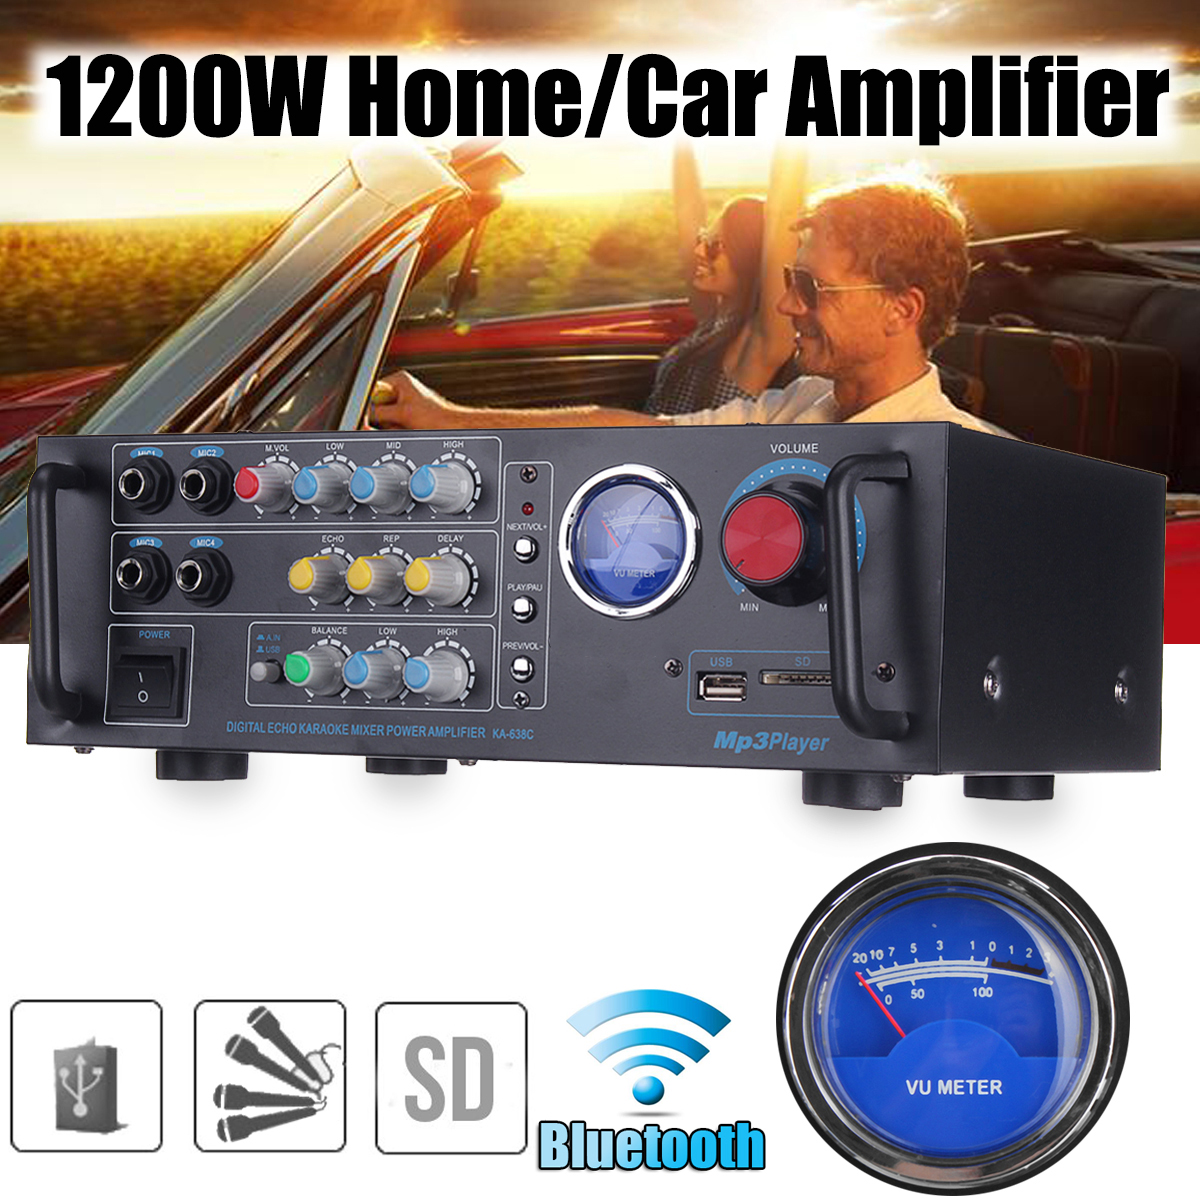 1200W Sound Amplifier for Speakers Subwoofer Car Audio Car Amplifier Equalizer Stereo Amplifier for Cars Subwoofer In The Car yiyelang yh 128 1200w car amplifier audio installation wires cables kit red blue